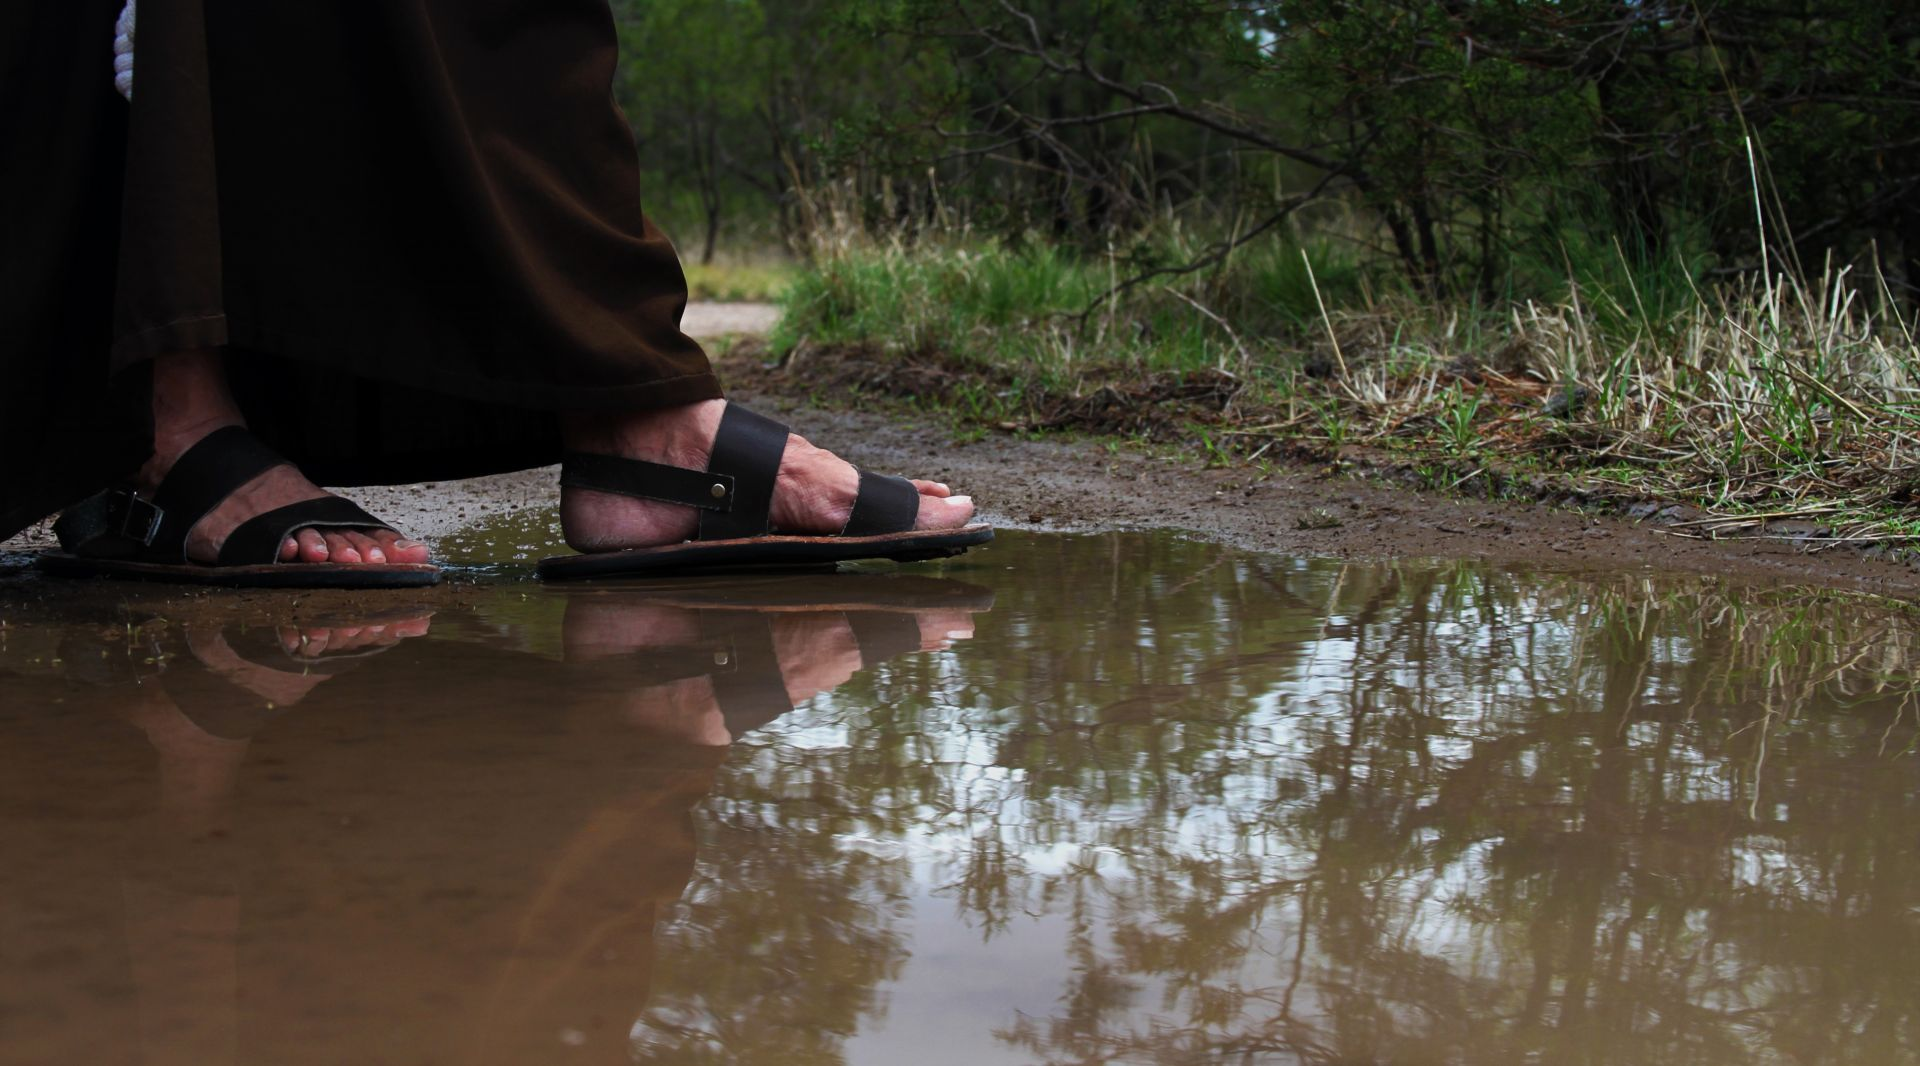 water, feet, reflection, vocation, steps, fray, religious, friar, huaraches, flips flops